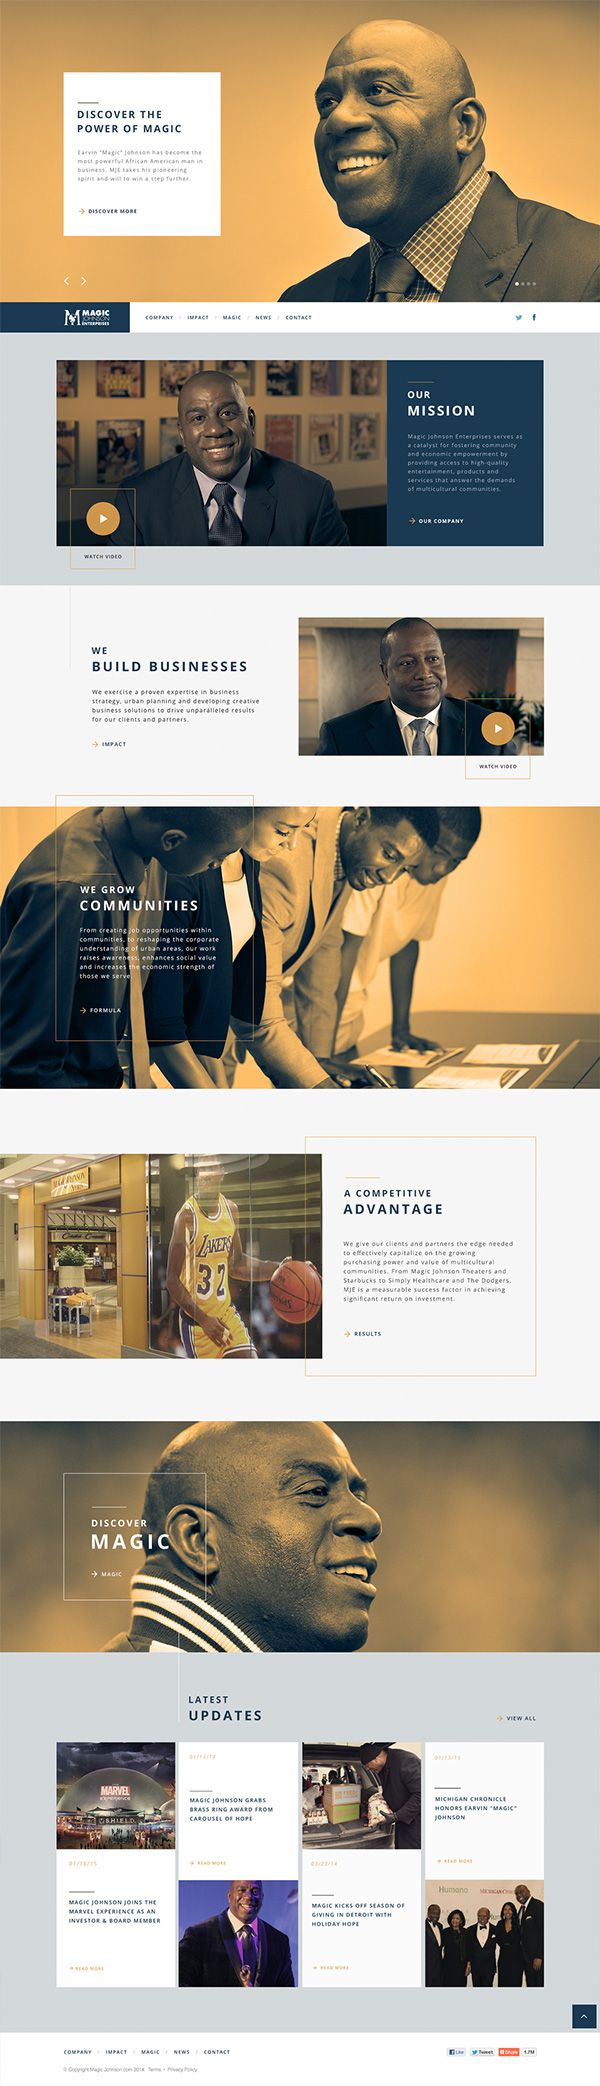 Clean / Photo Integration / Corporate / Color /// MagicJohnson.com on Web Design Served